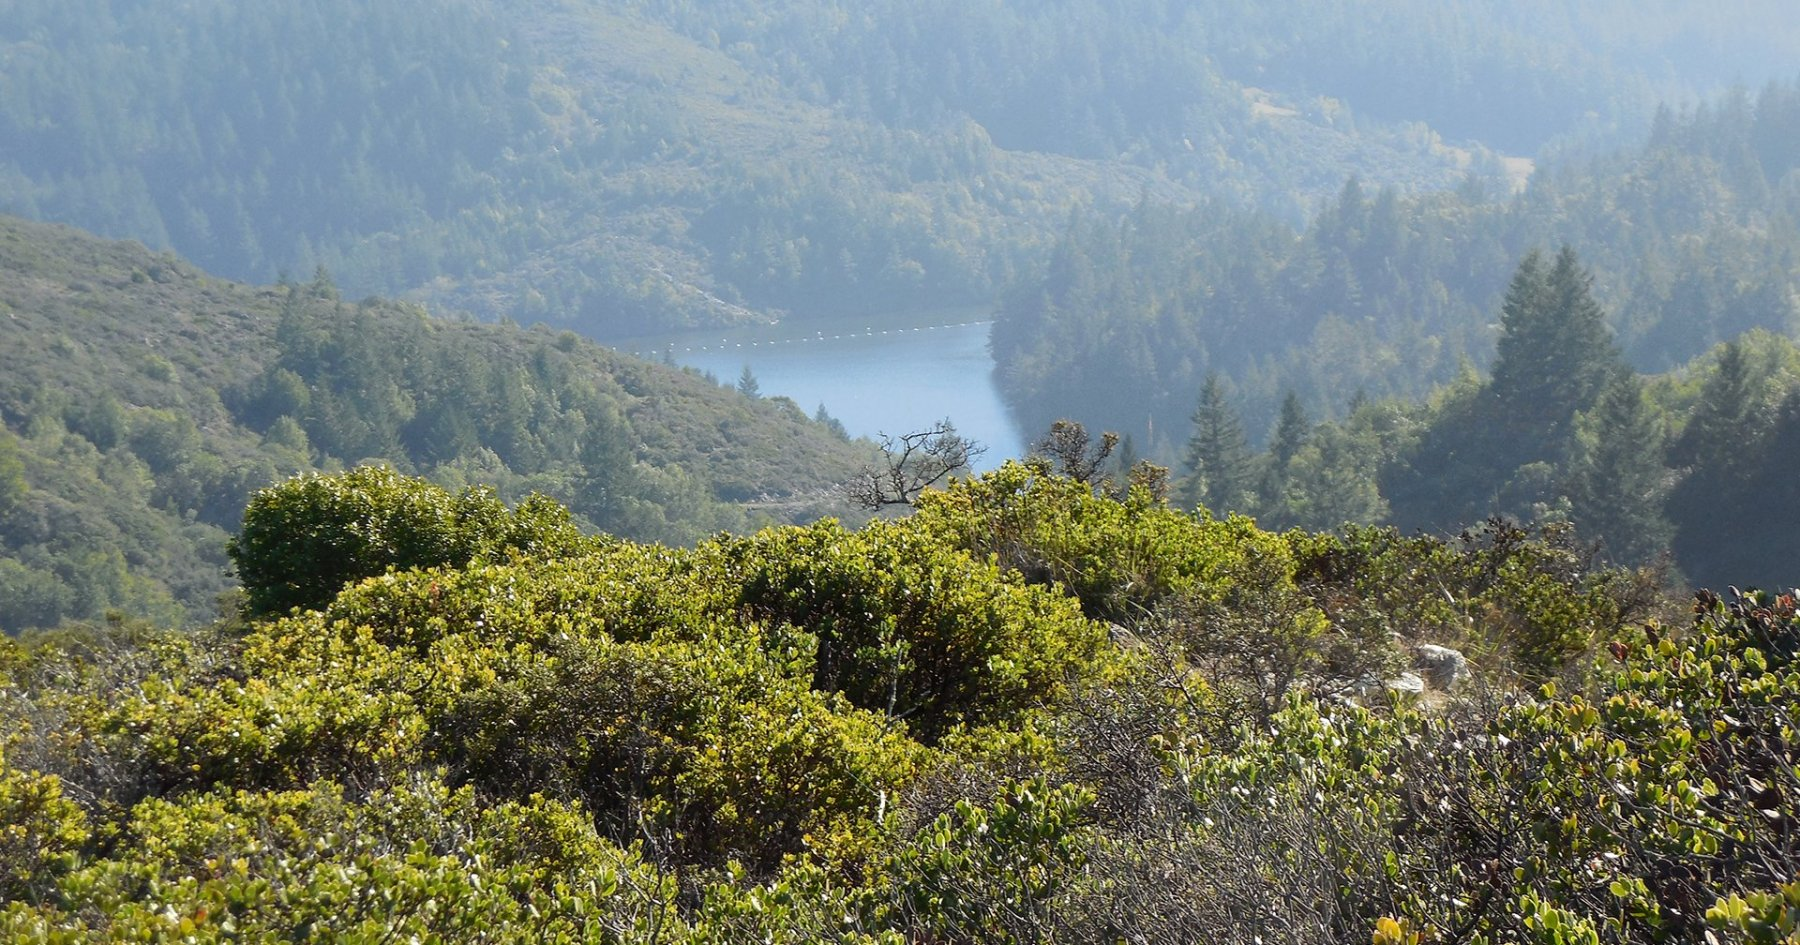 Hike to These 5 Vantages for New Views of the North Bay